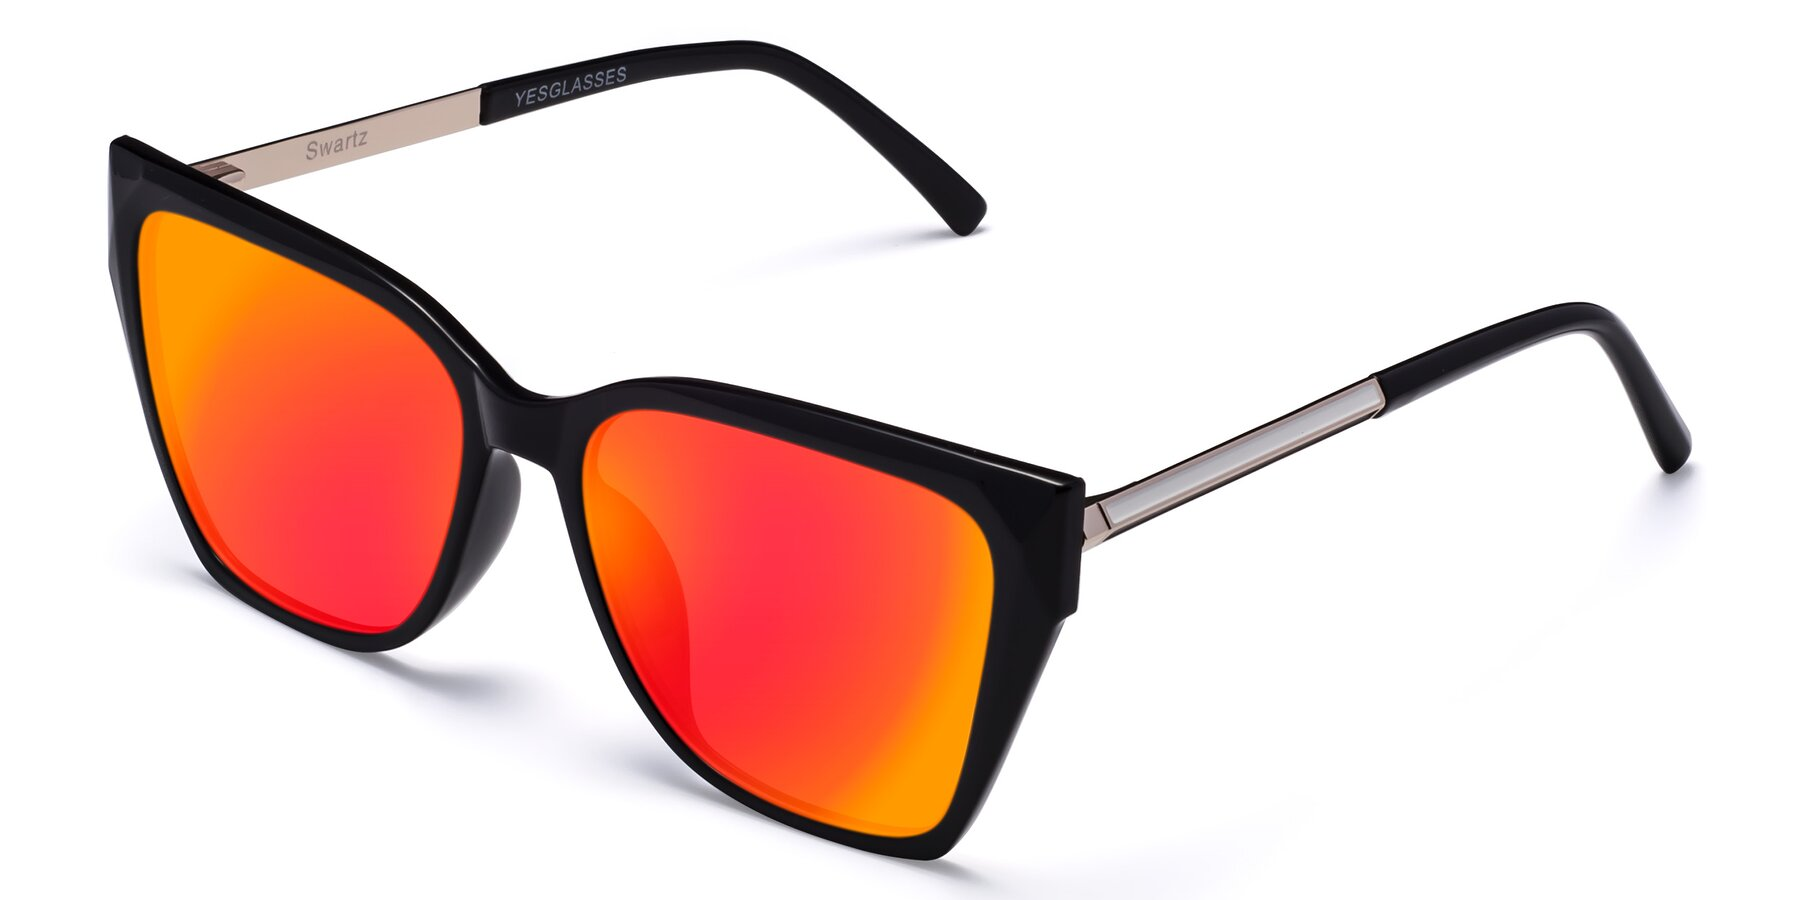 Angle of Swartz in Black with Red Gold Mirrored Lenses